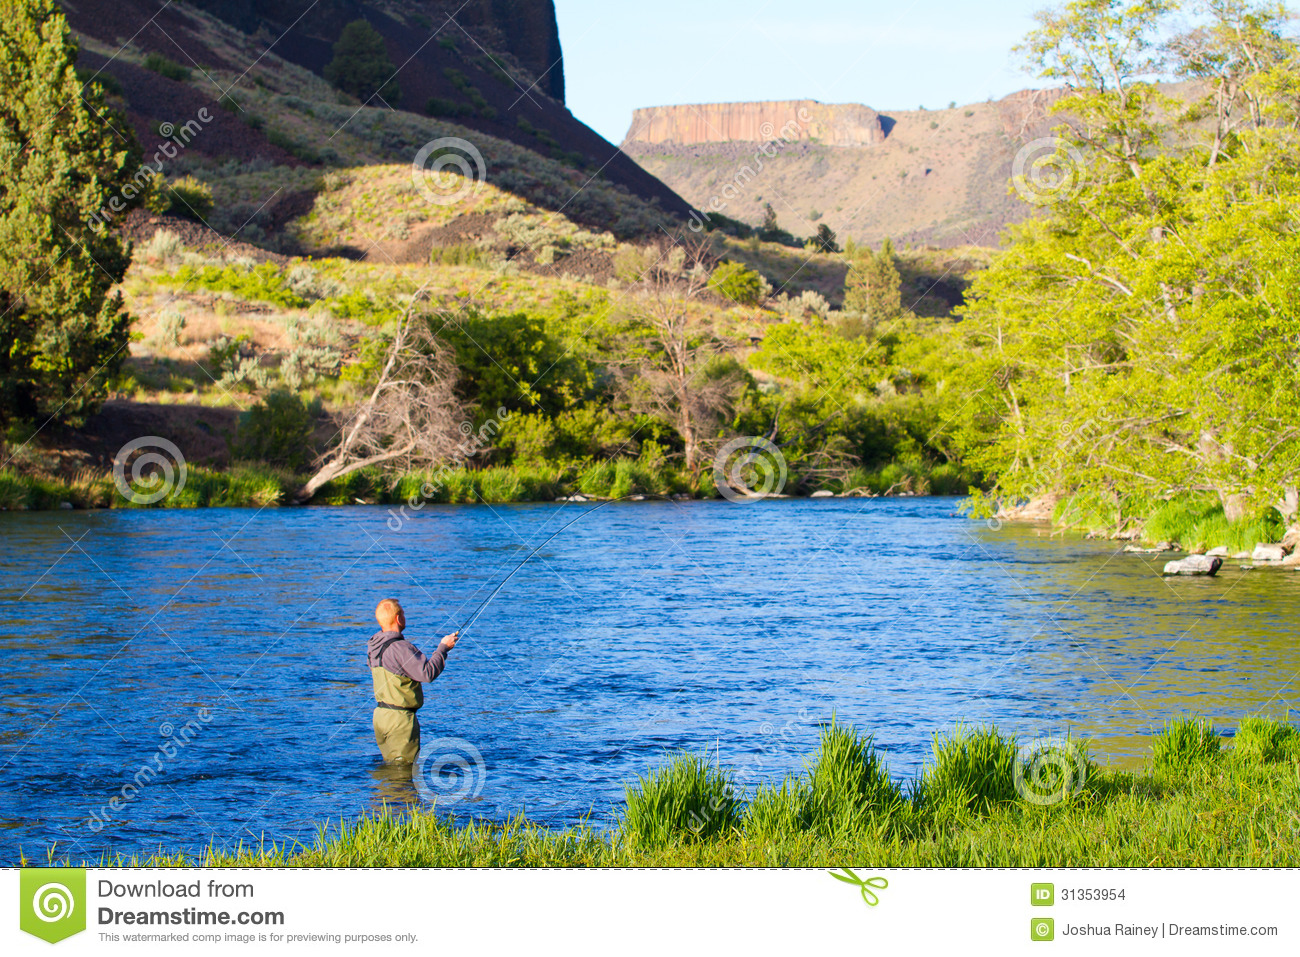 Fly fisherman deschutes river stock images image 31353954 for Oregon free fishing